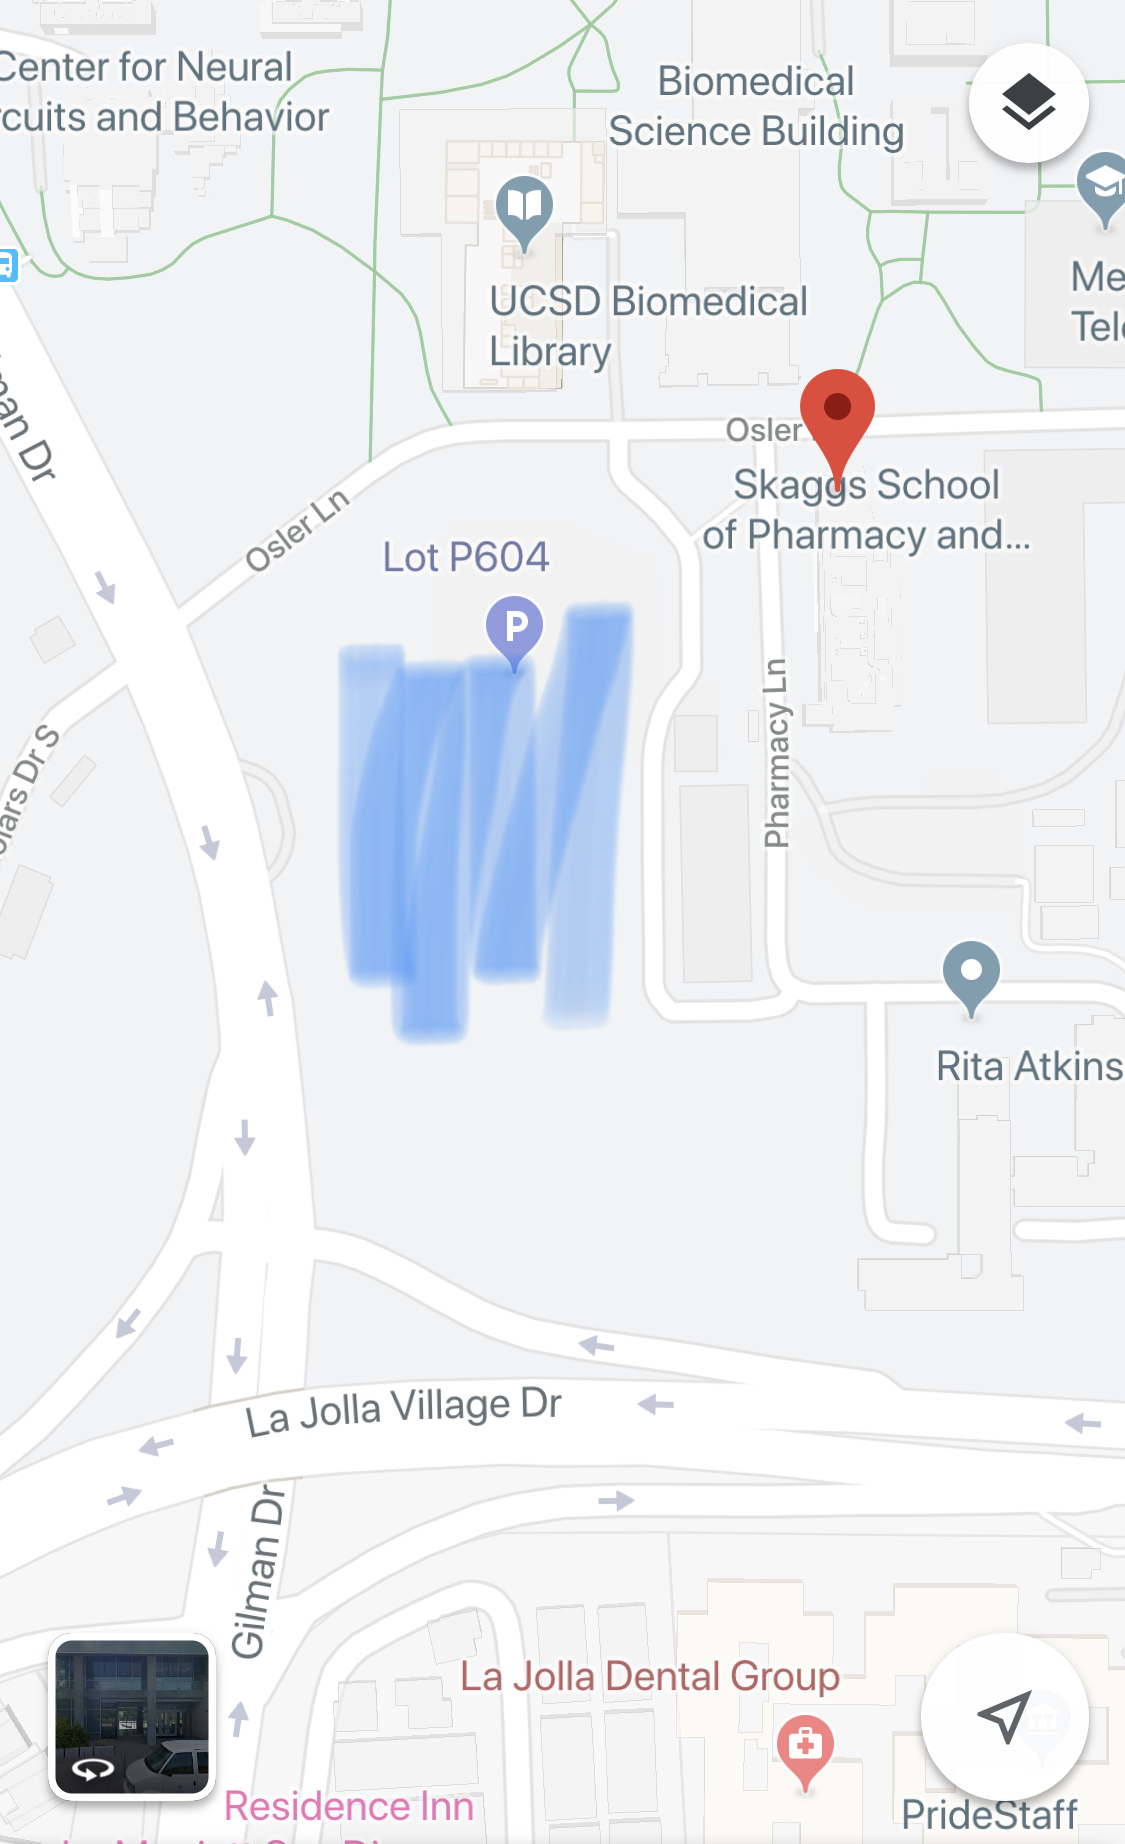 Map of where to park for screening at UCSD campus